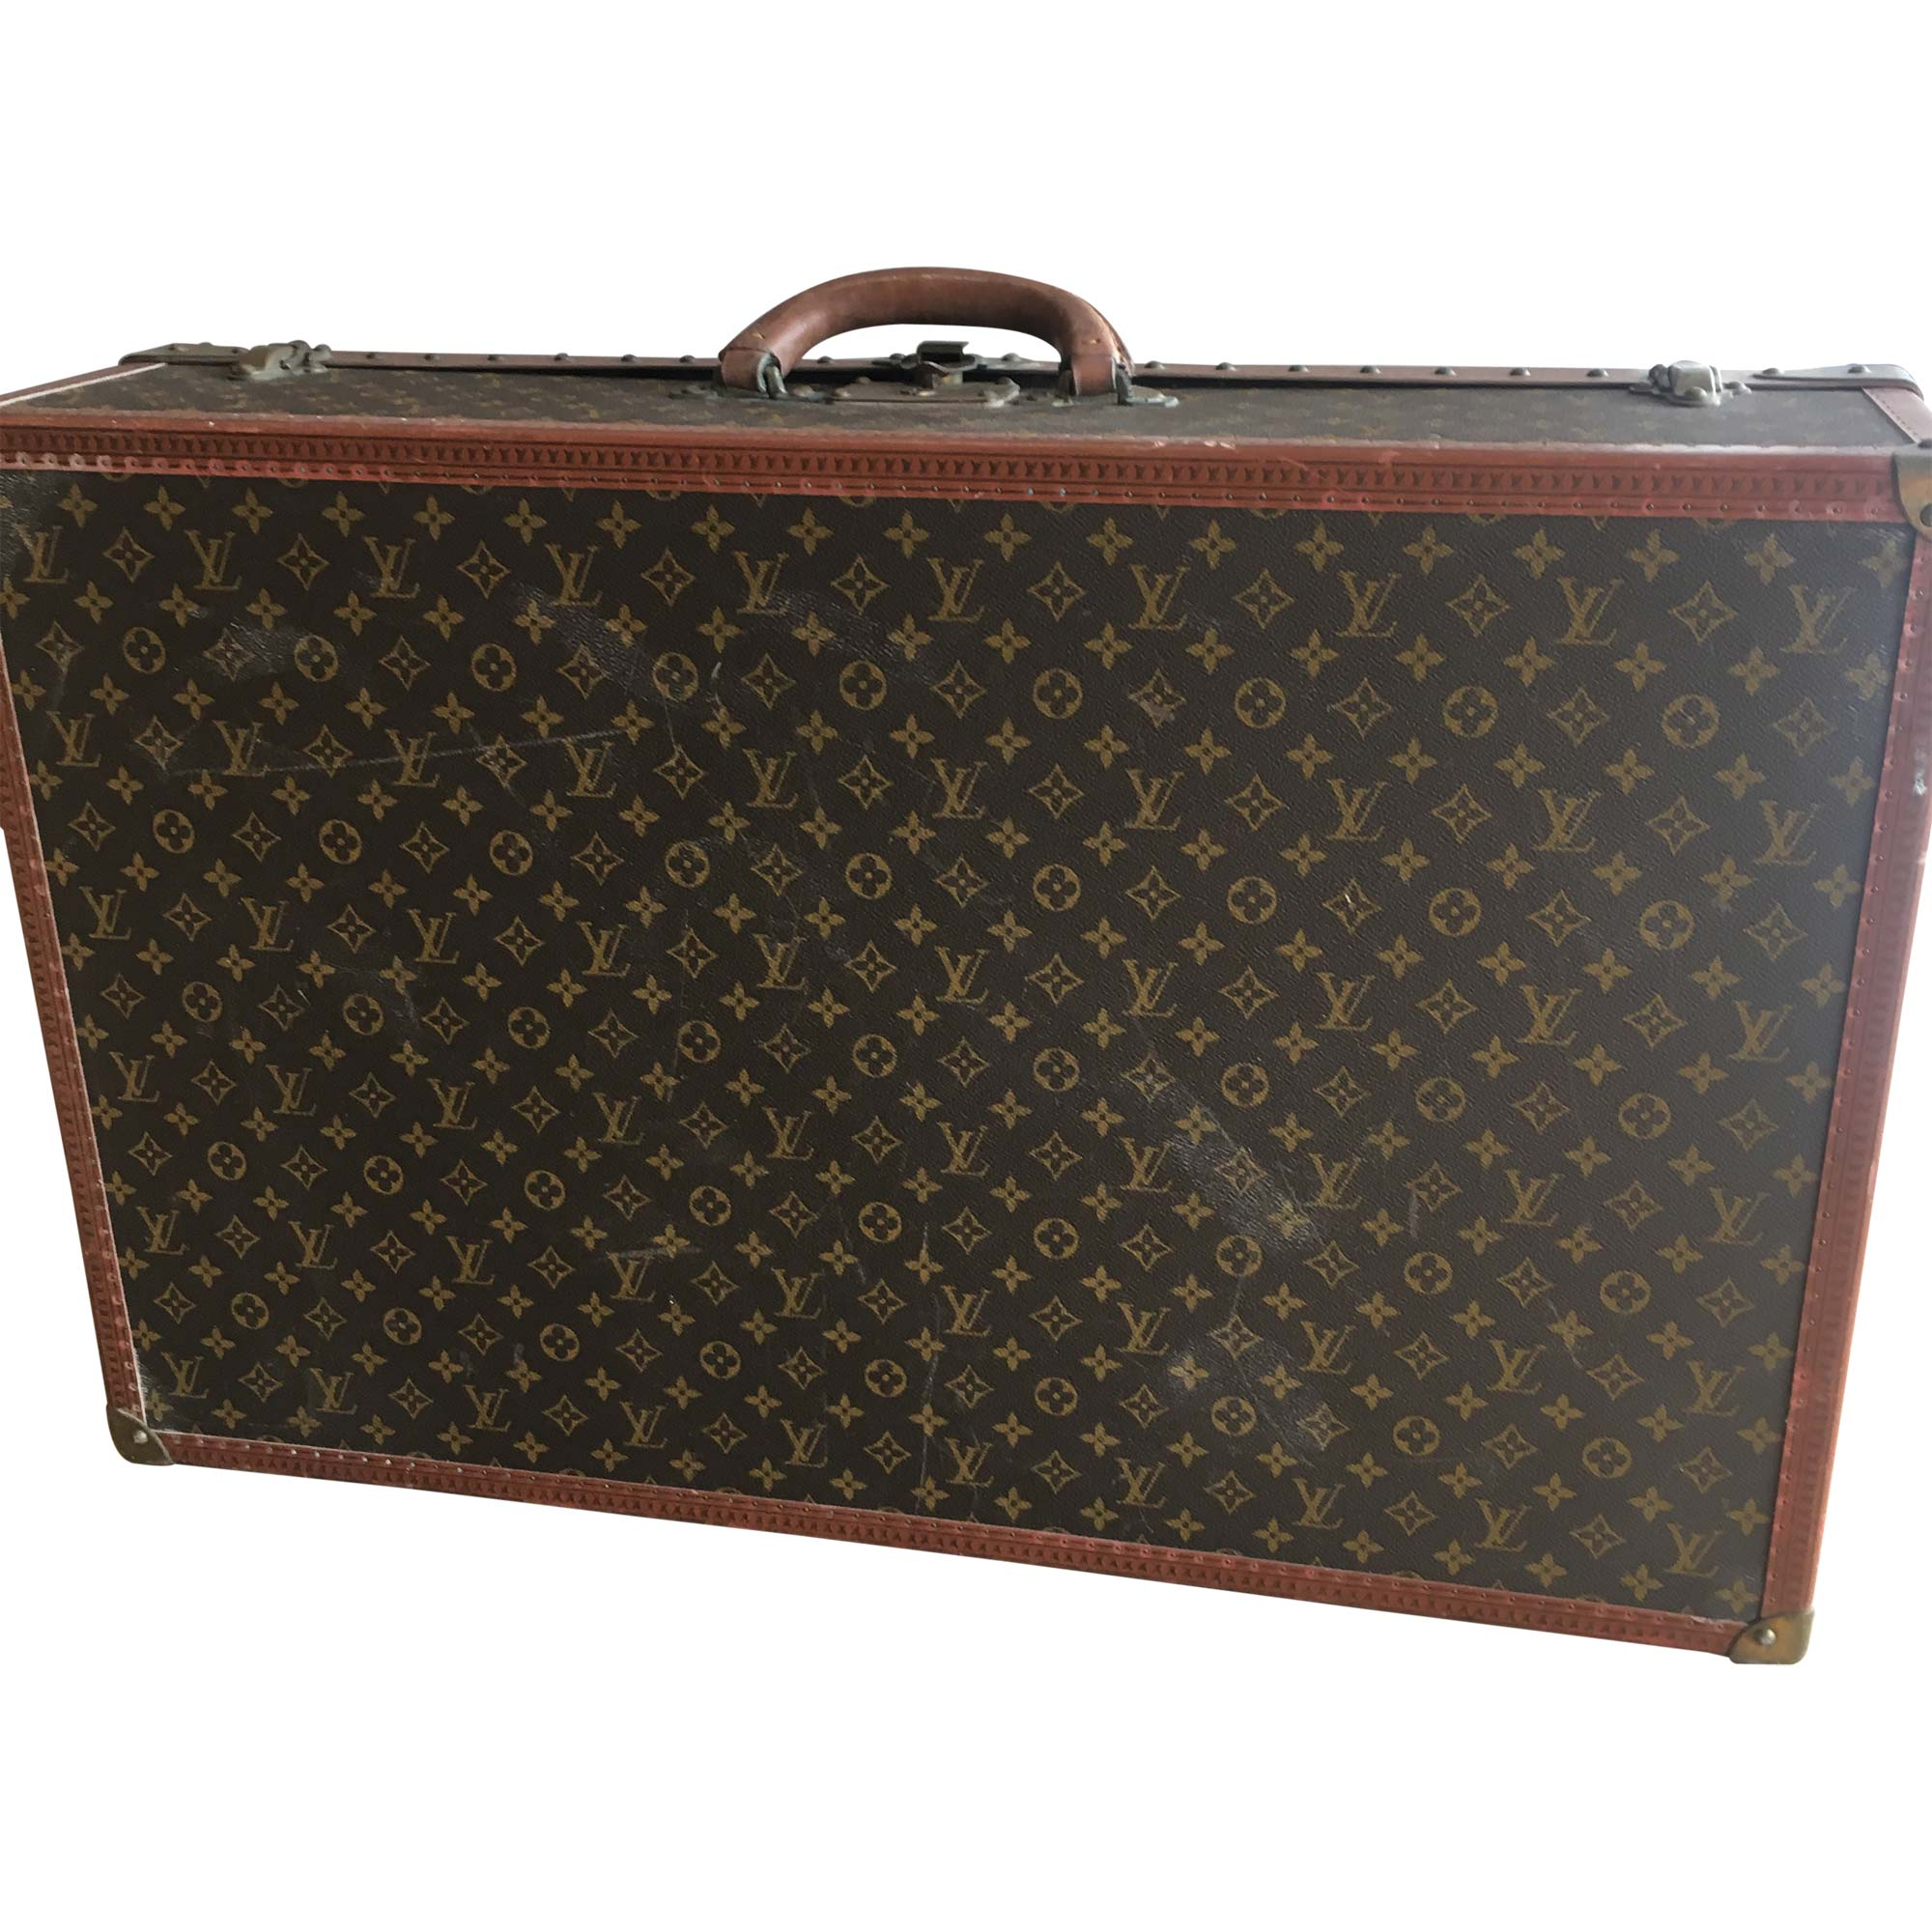 d4737514d5c Mallette LOUIS VUITTON marron - 7315572